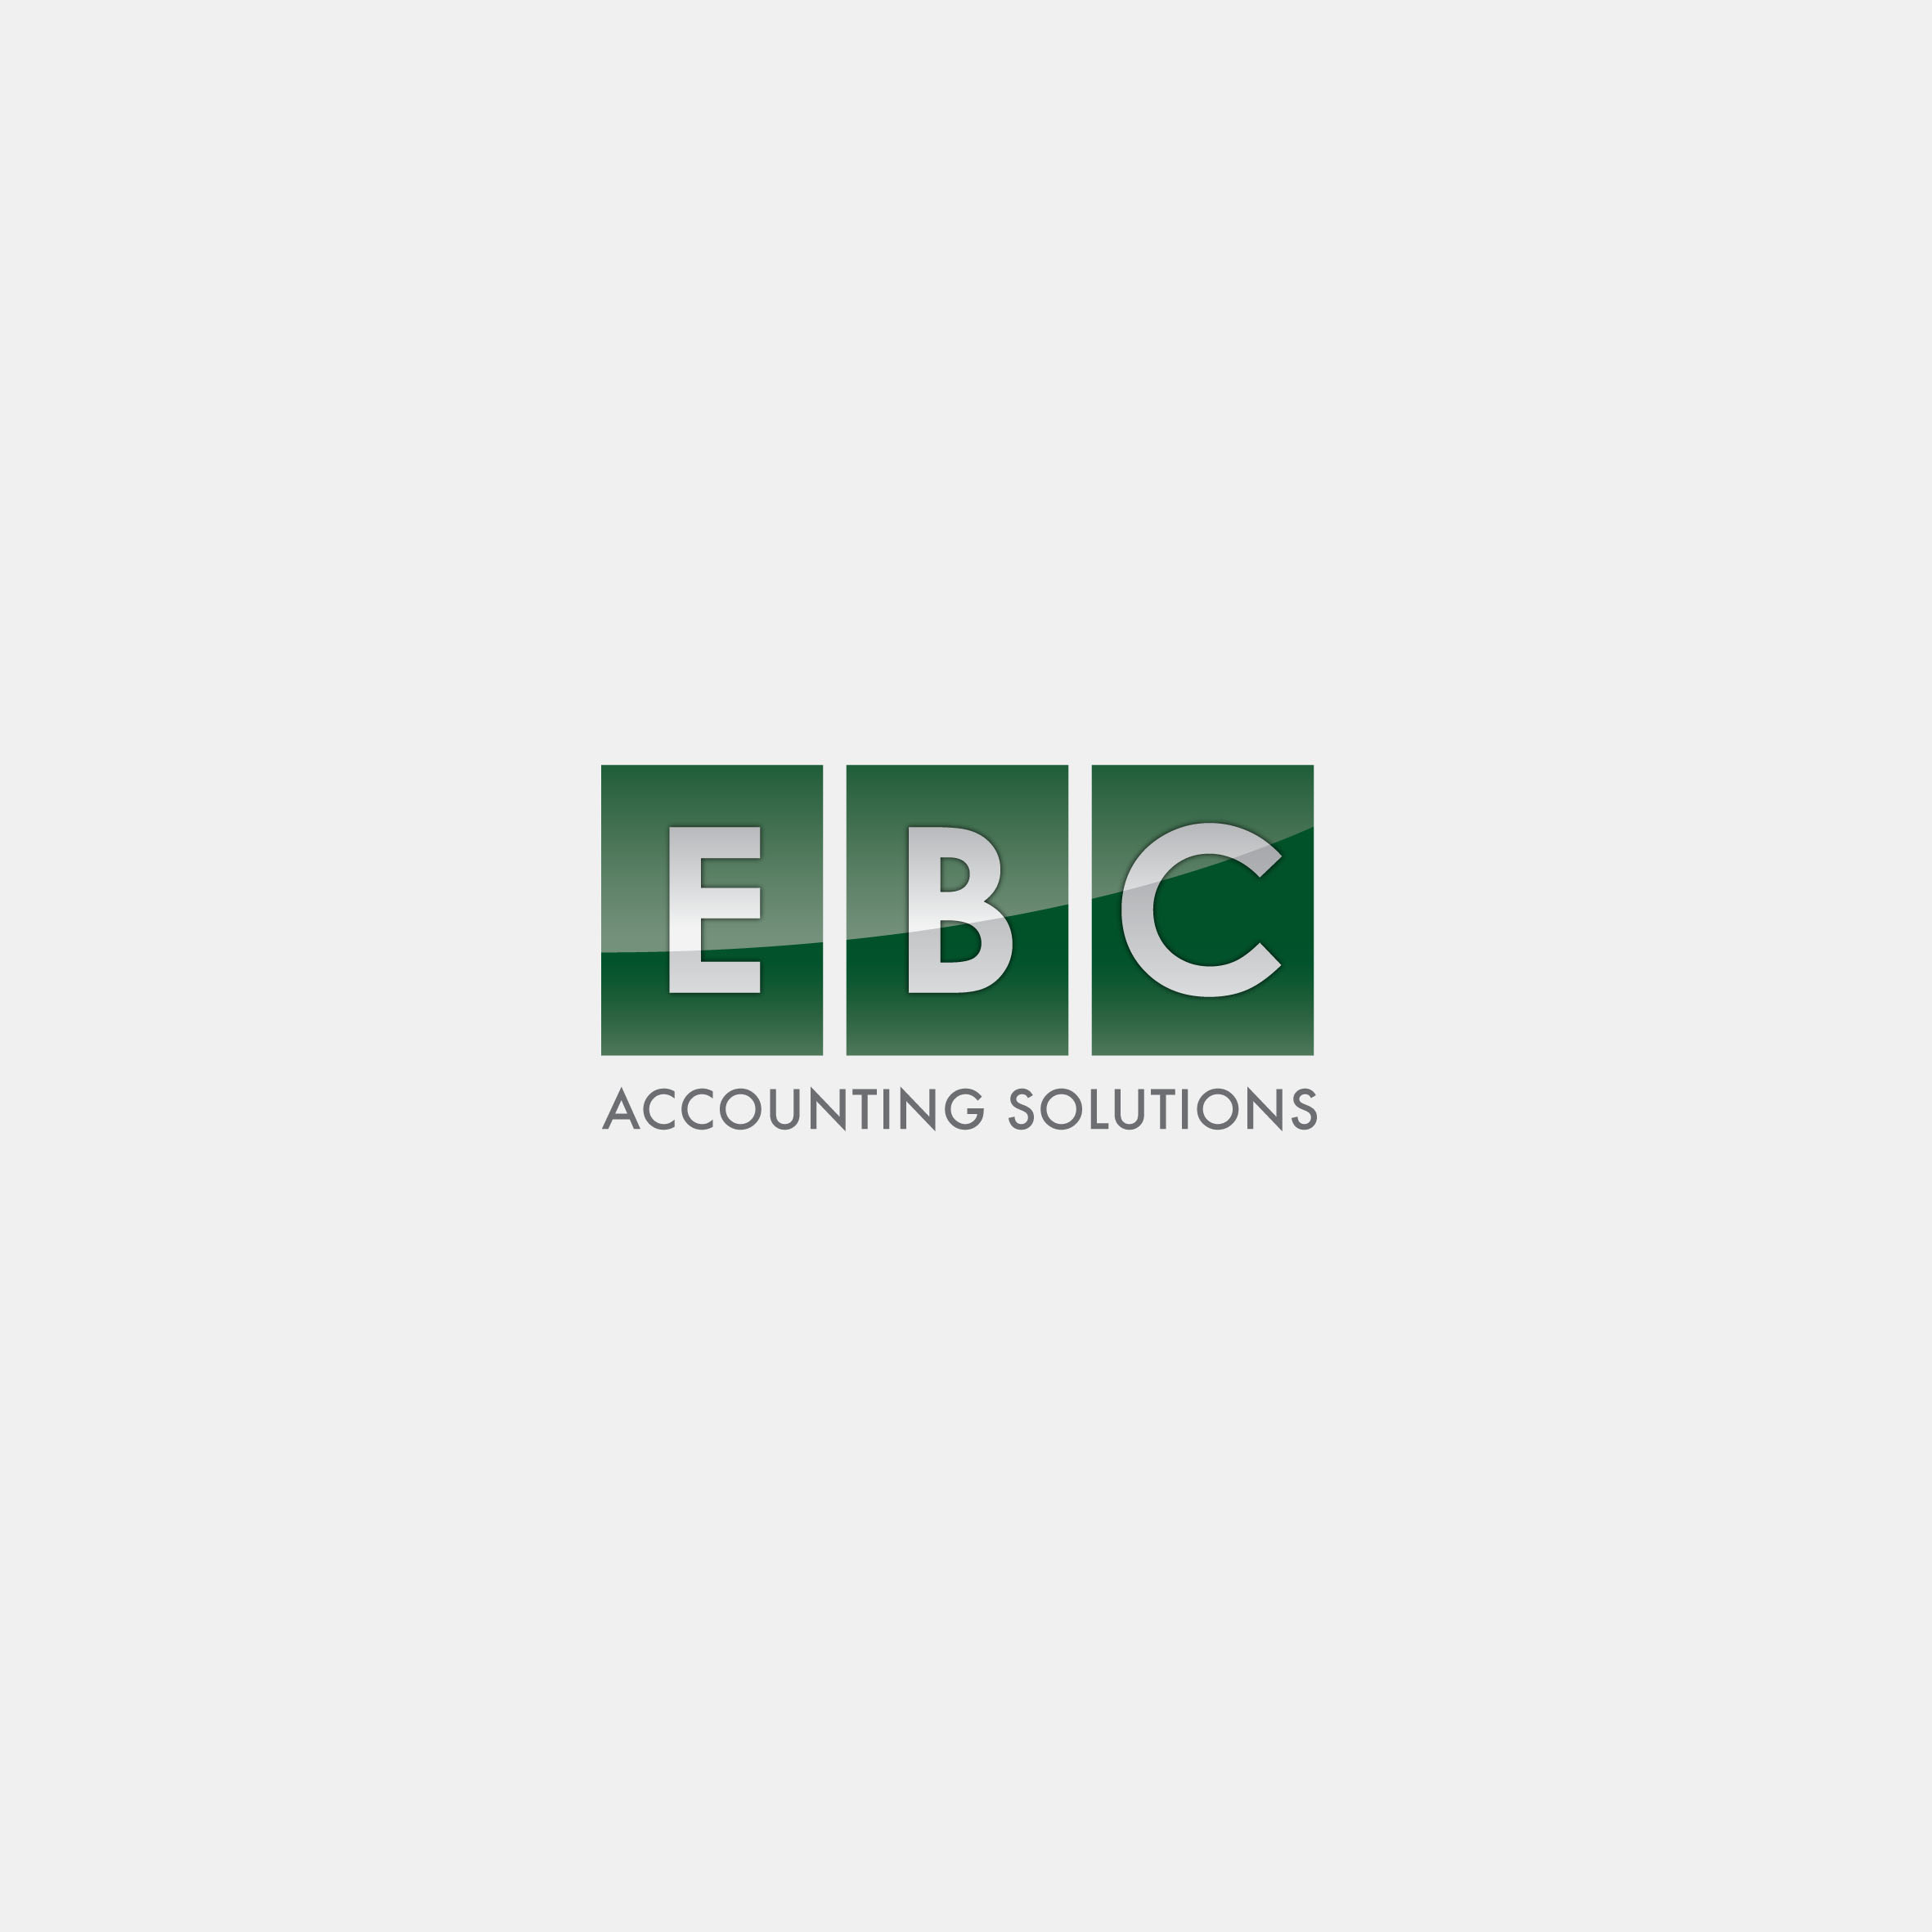 Logo Design by tanganpanas - Entry No. 143 in the Logo Design Contest New Logo Design for EBC Accounting Solutions.